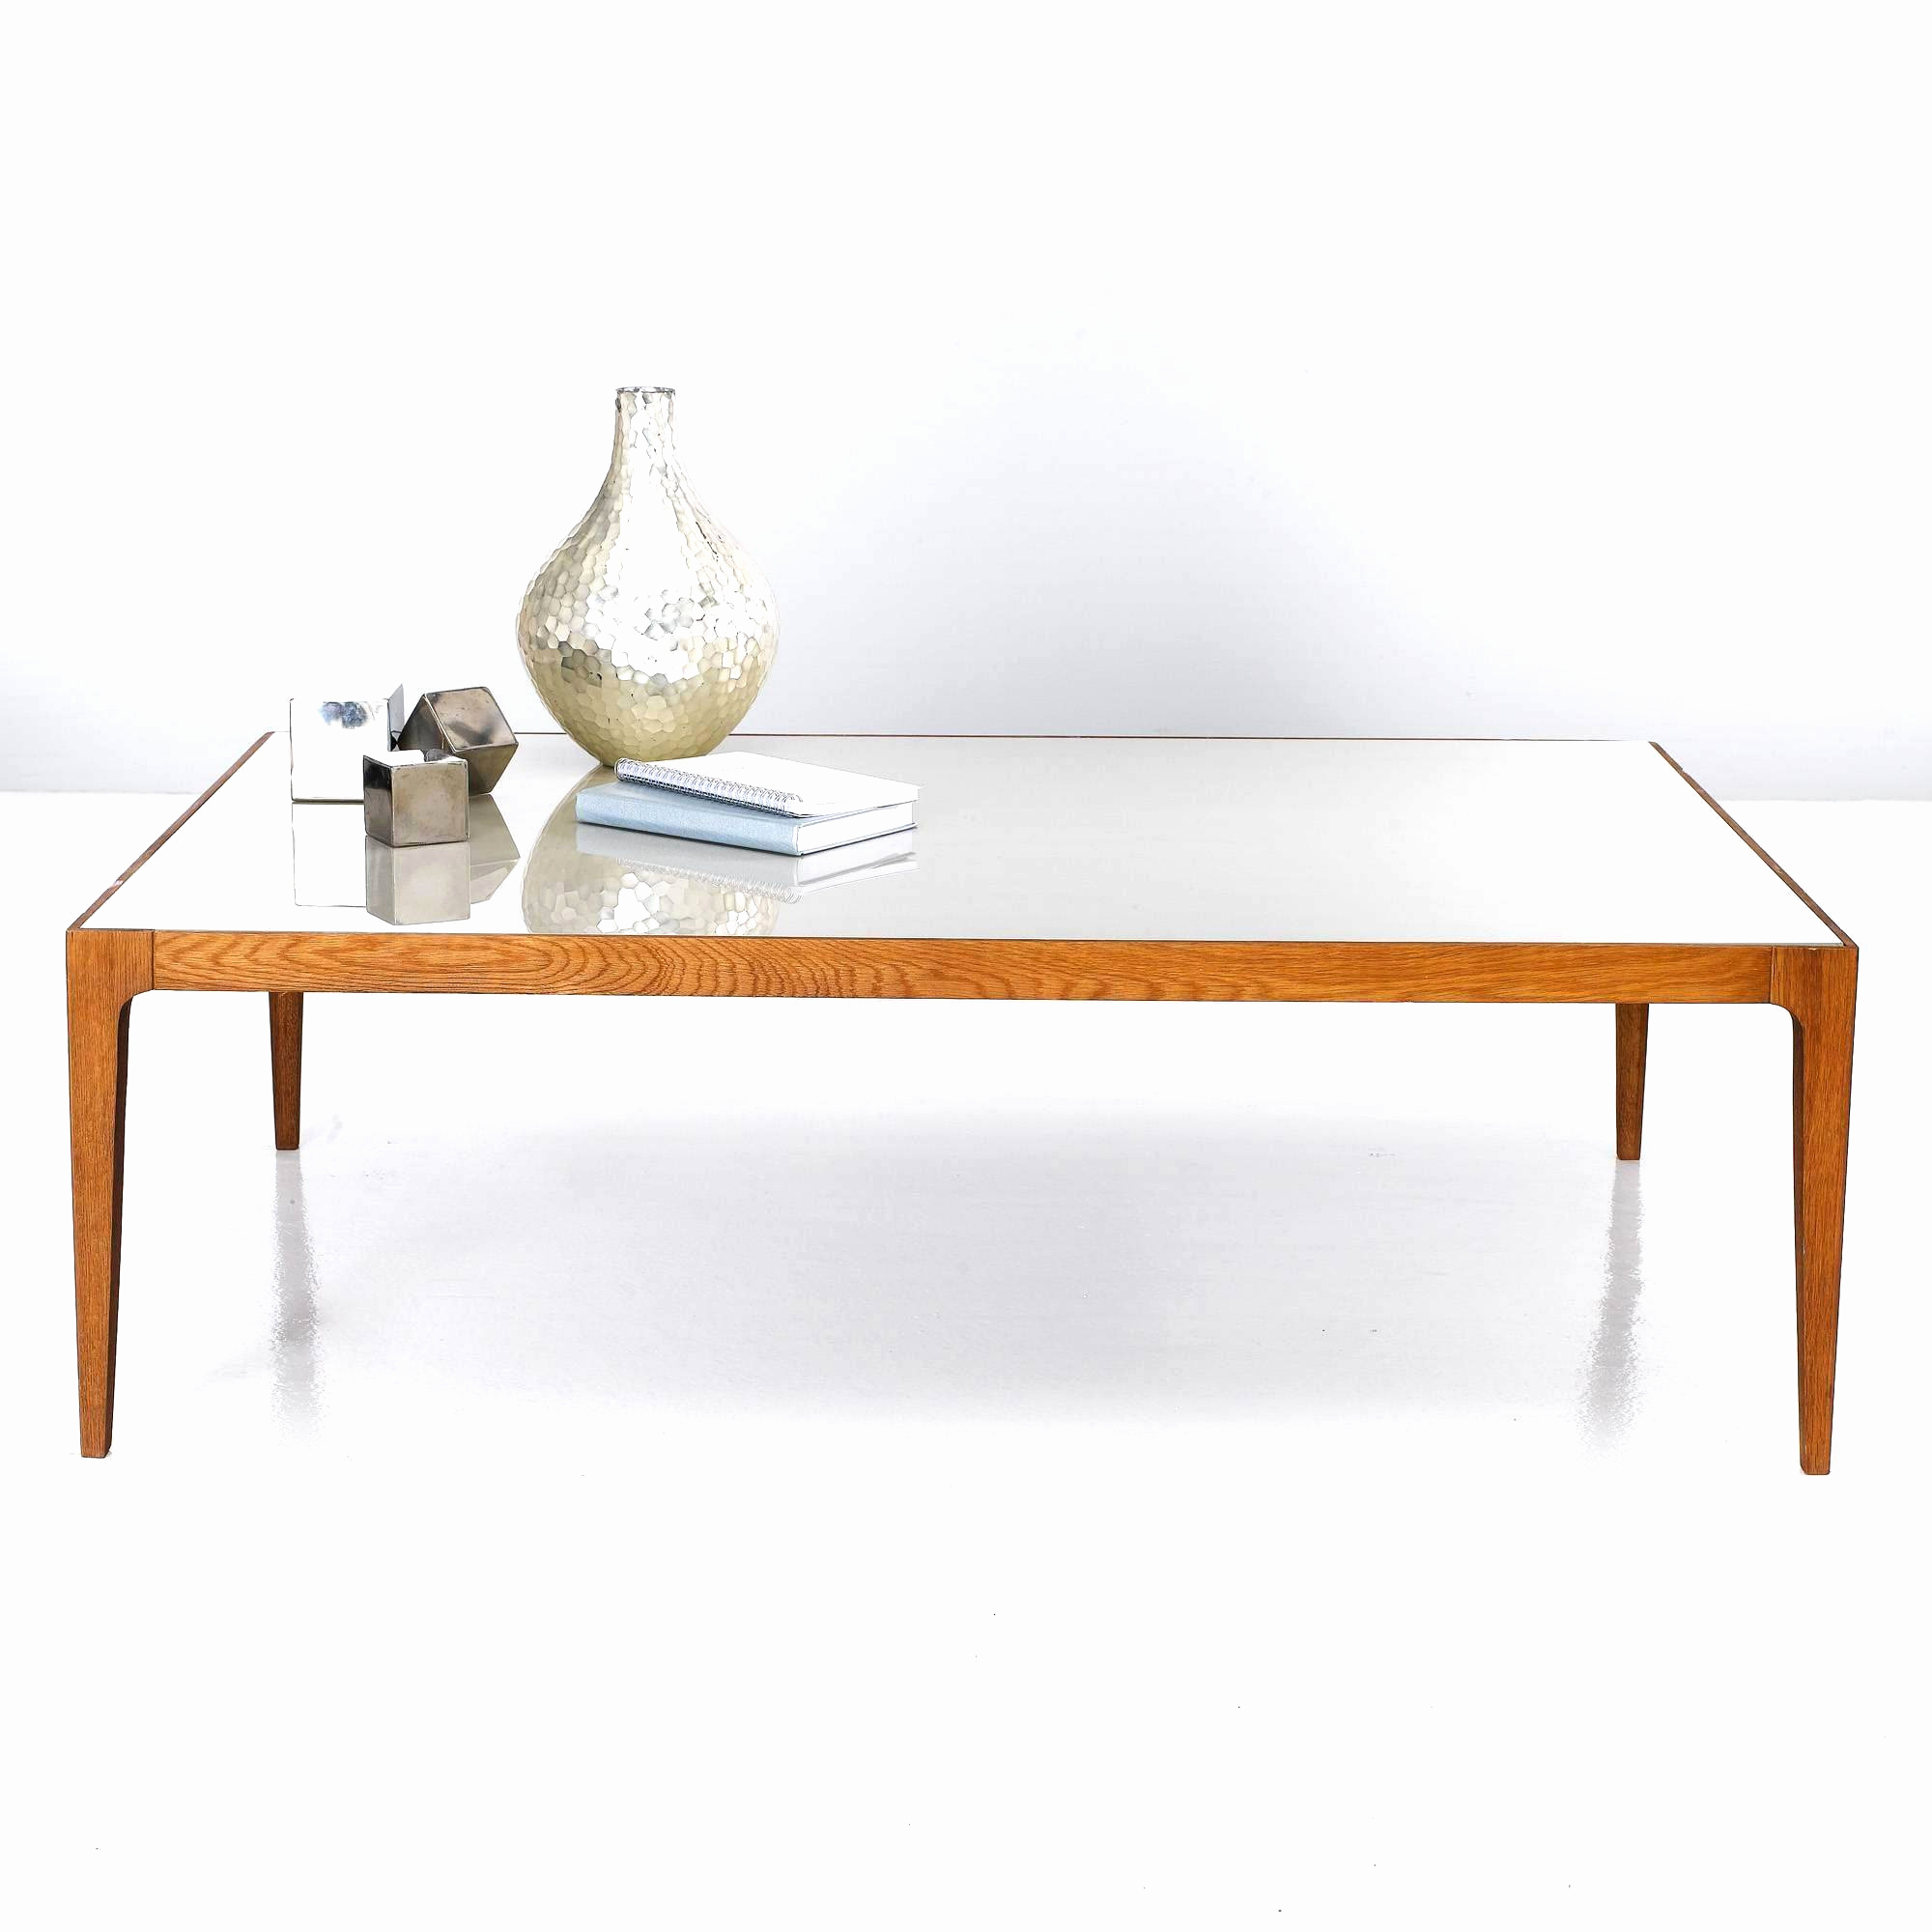 Camif Table Basse Nouveau Image Table Basse Marbre Design Beau Table Basse En Bois Design